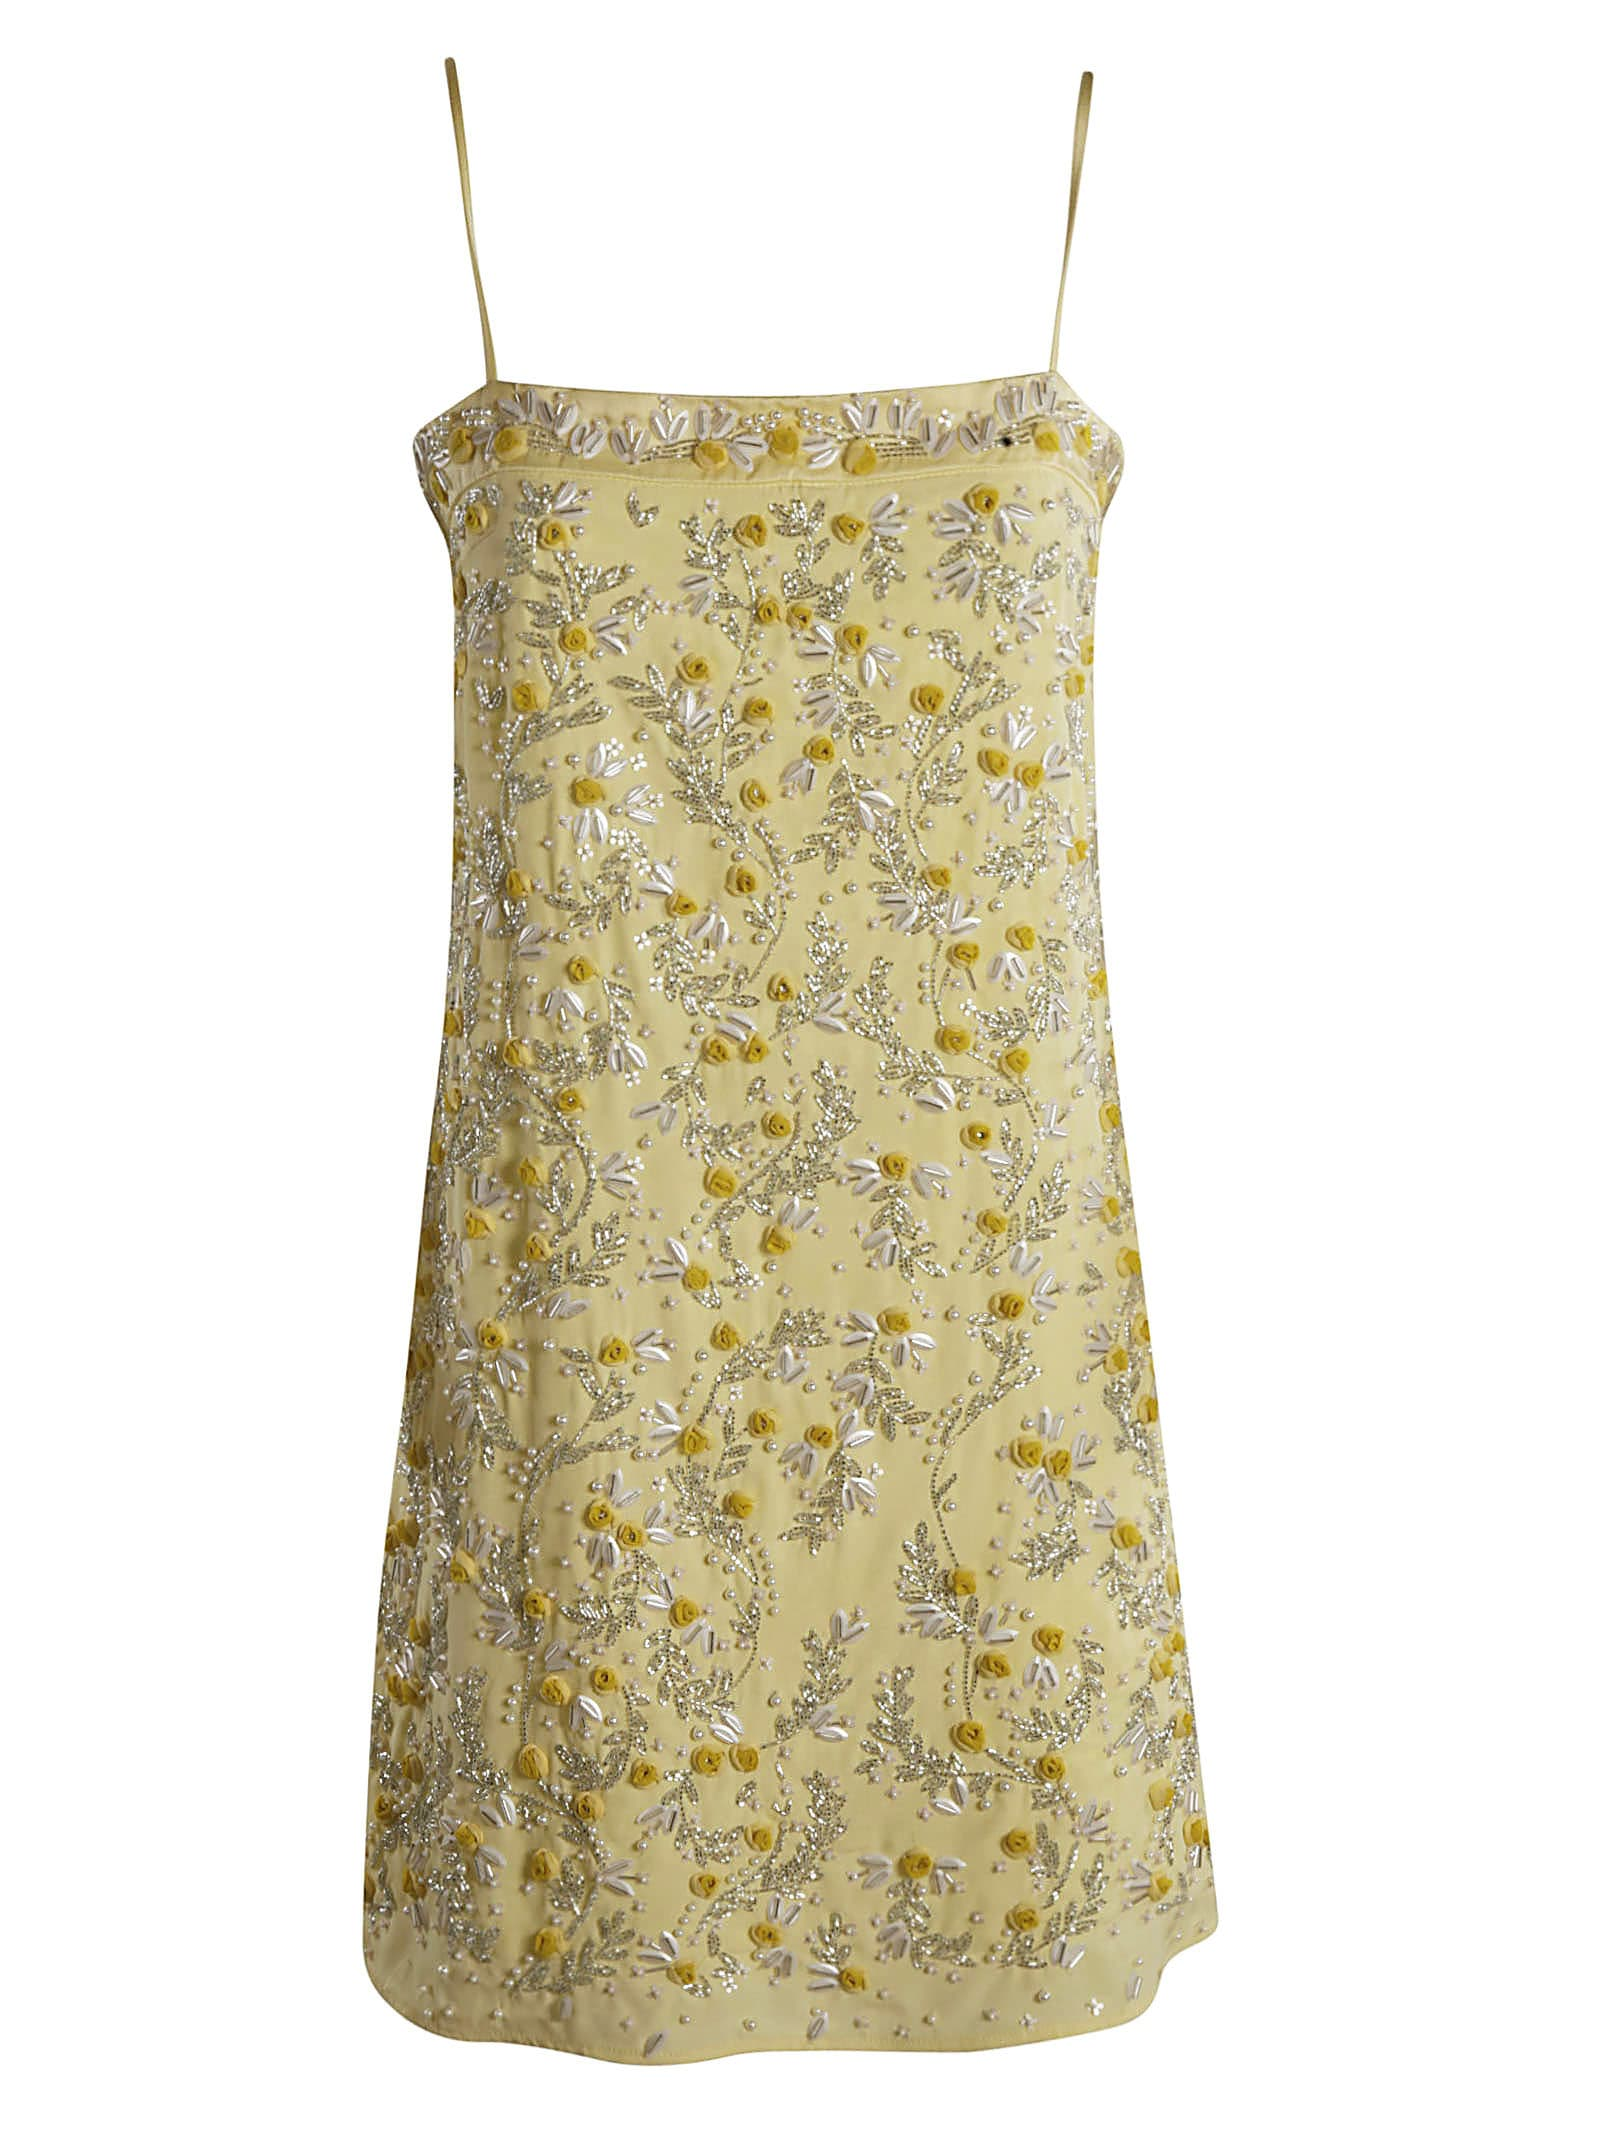 Blumarine Floral Applique Short Dress